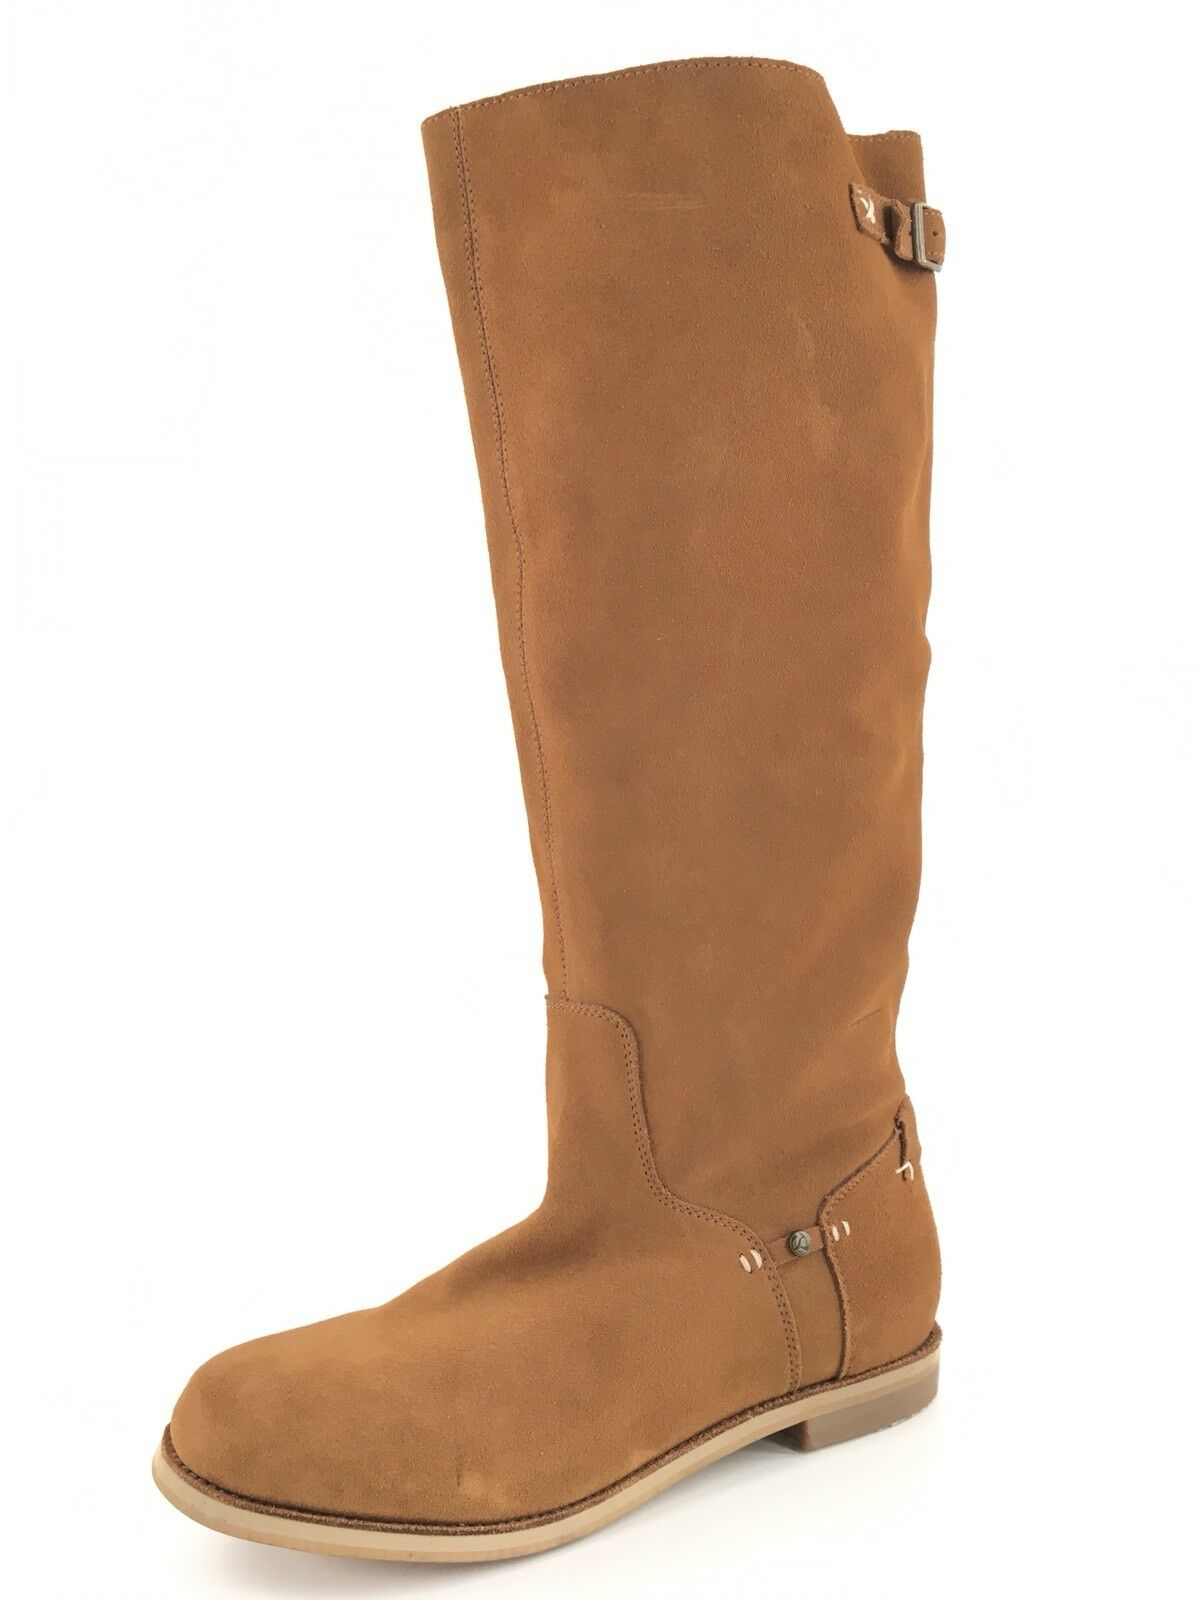 New Reef High Desert Chestnut Suede Knee High Boots Women's Size 9 M